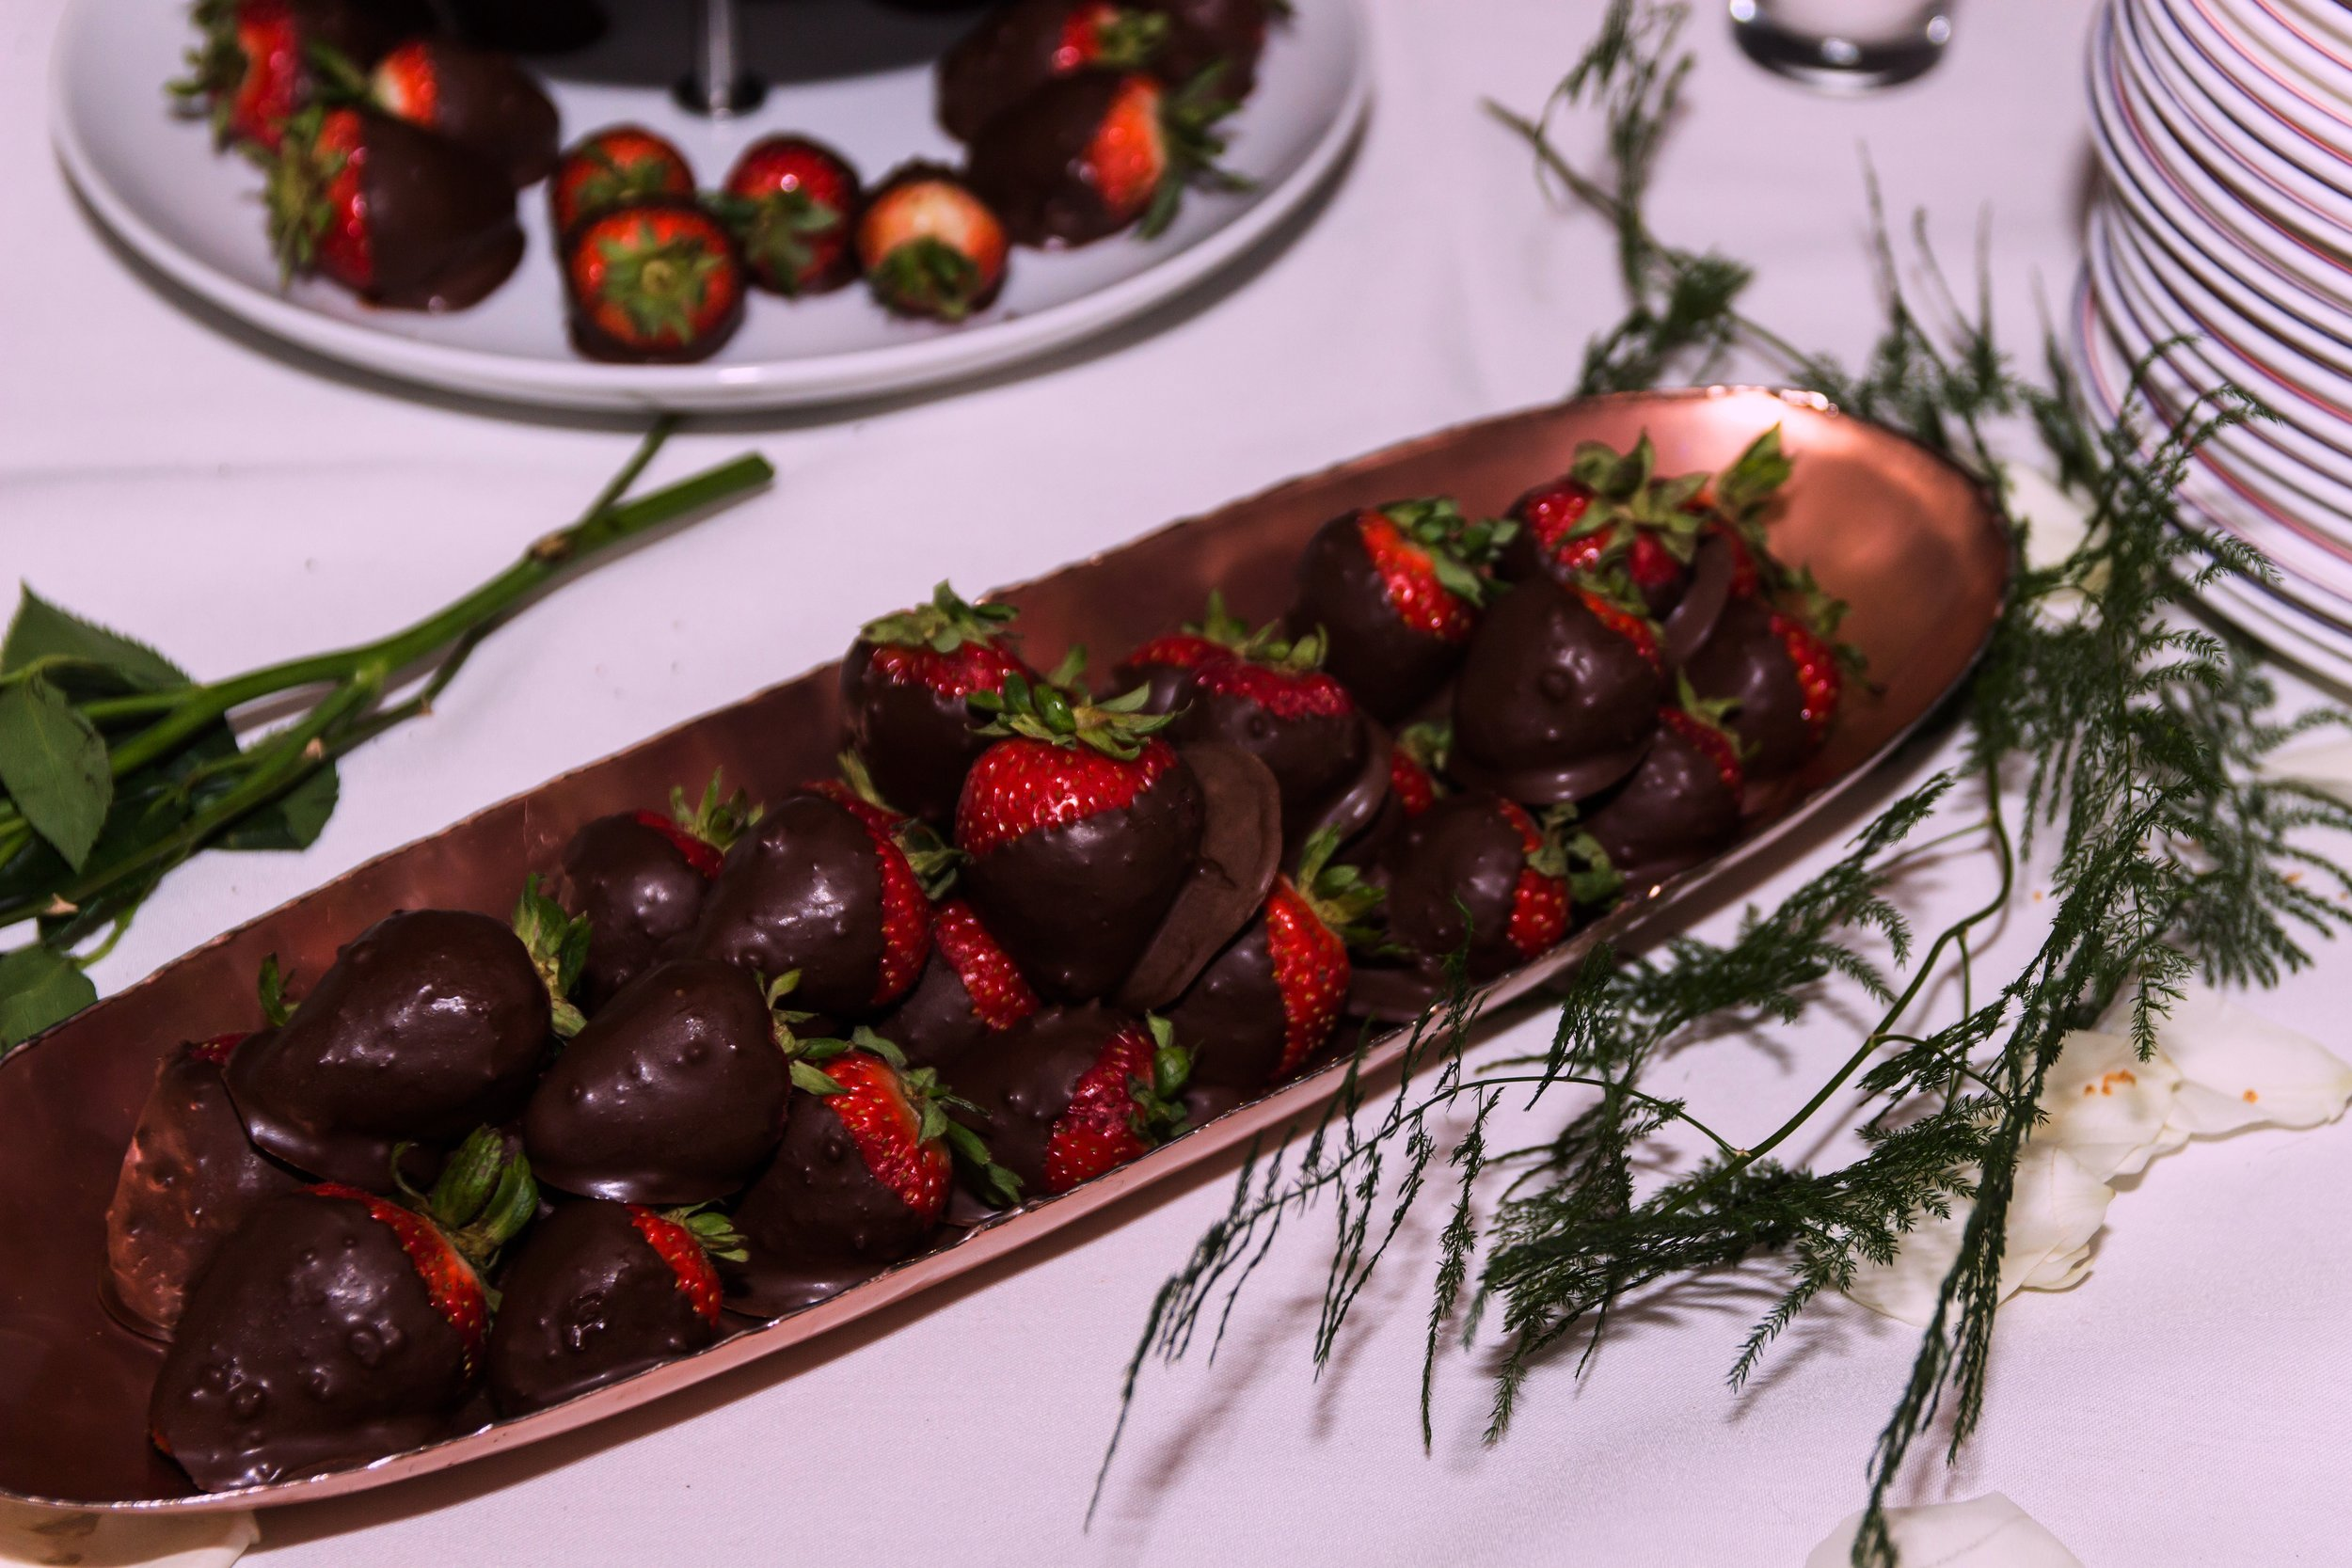 Chocolate-dipped strawberries served in a gleaming copper plate